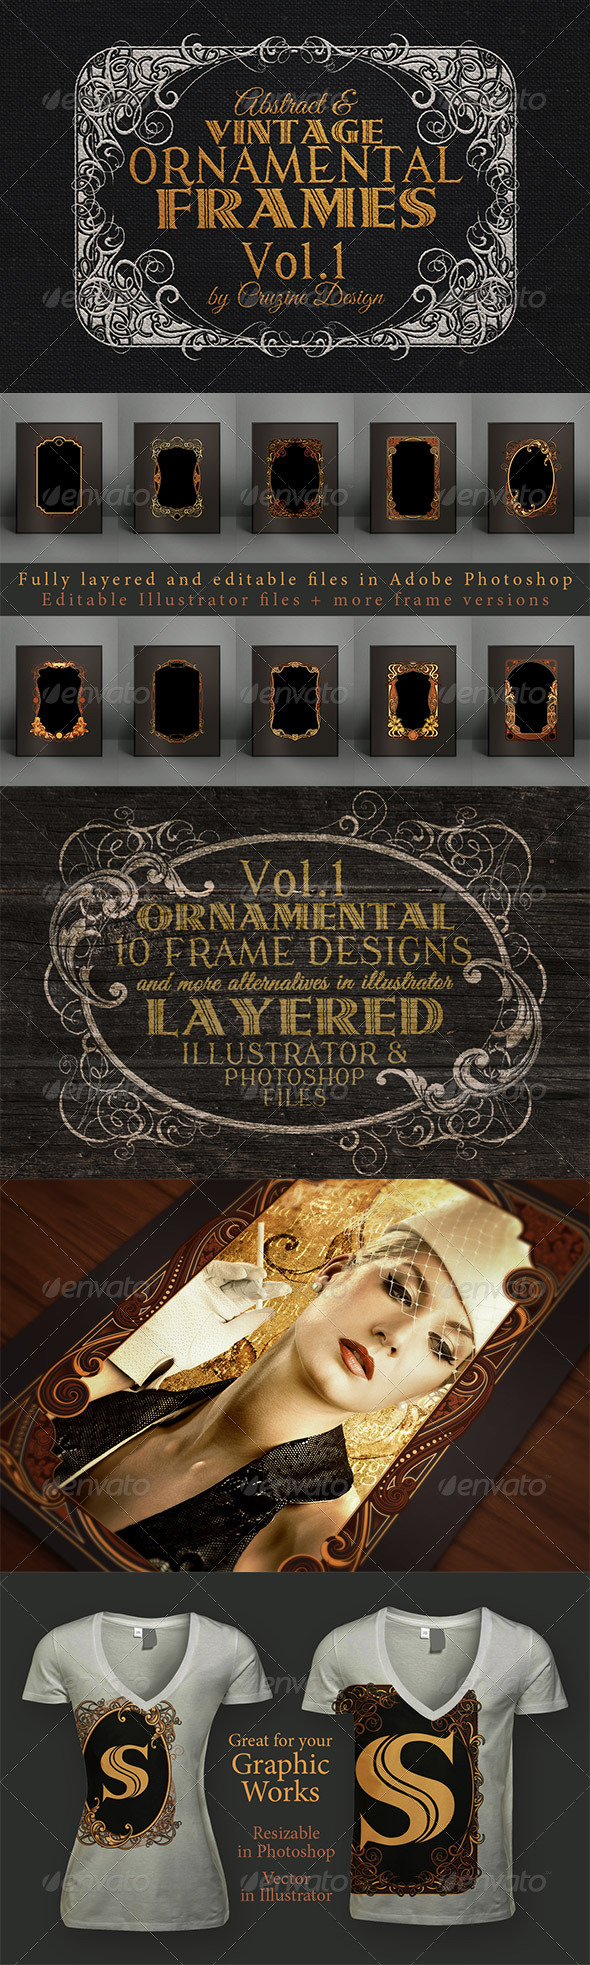 GraphicRiver 10 Frames Vol.1 Vintage Ornament 6063620